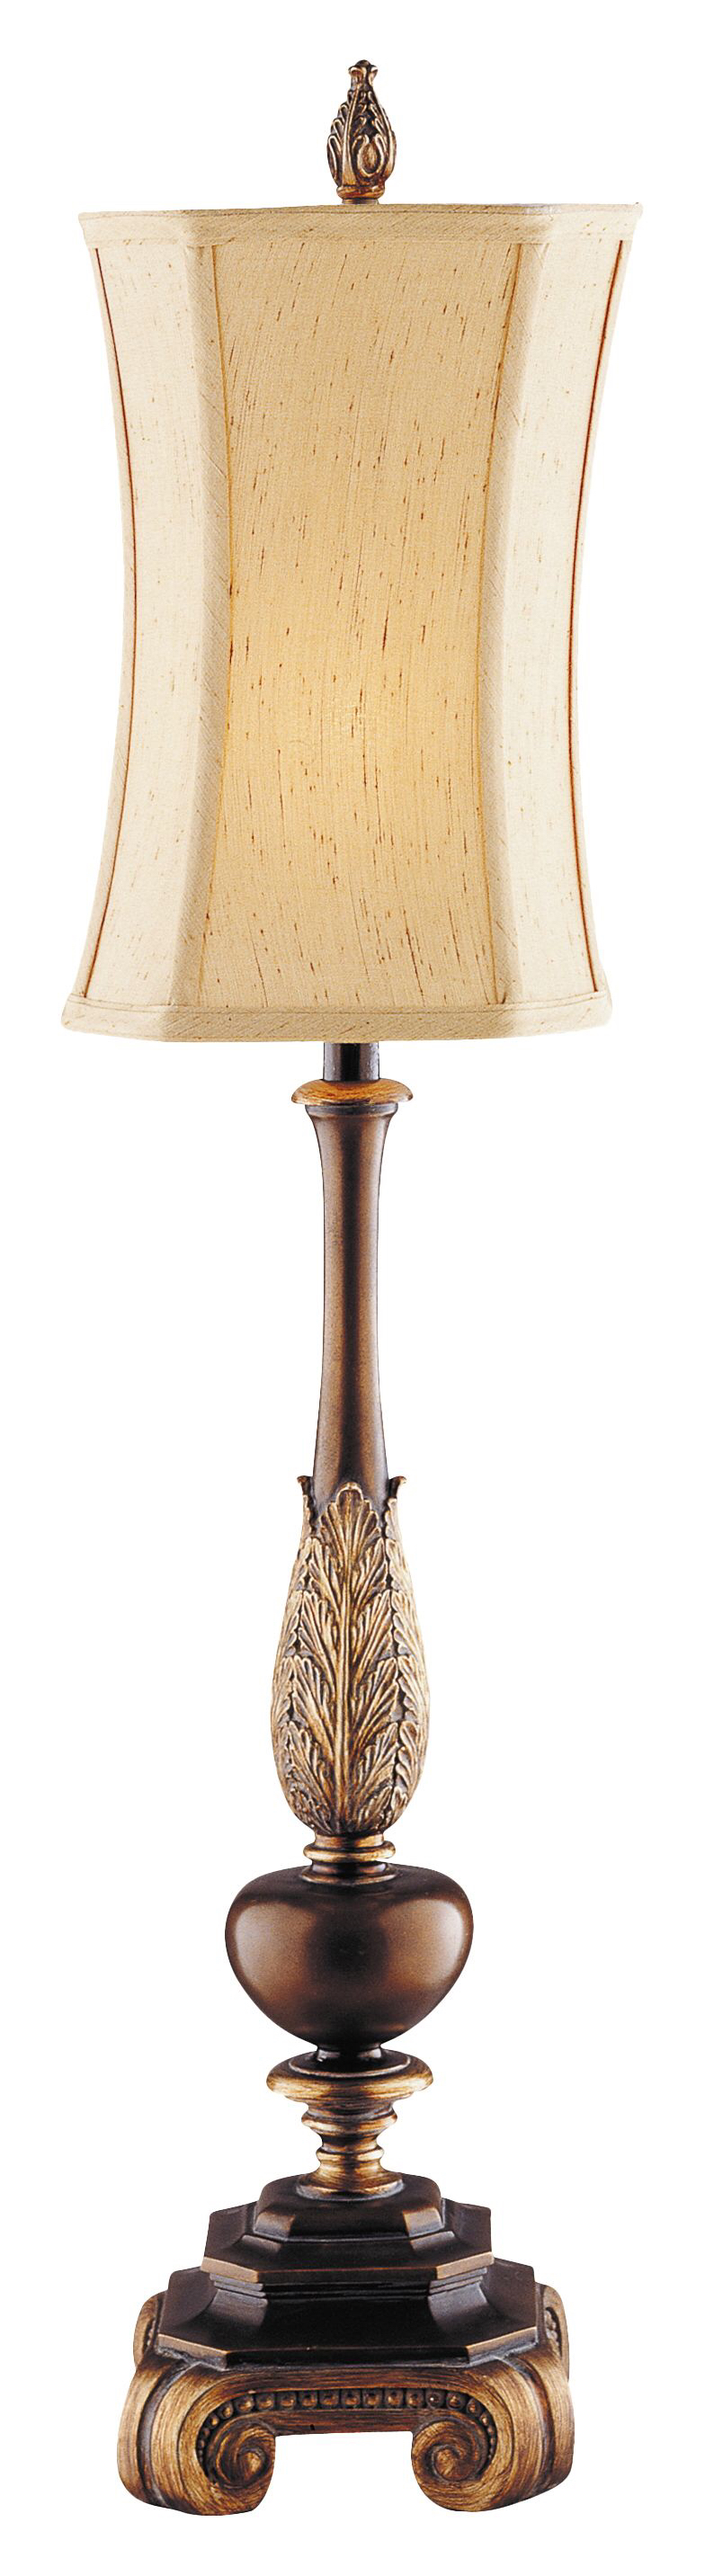 "Queen 35.5"" H Table Lamp with Oval Shade 